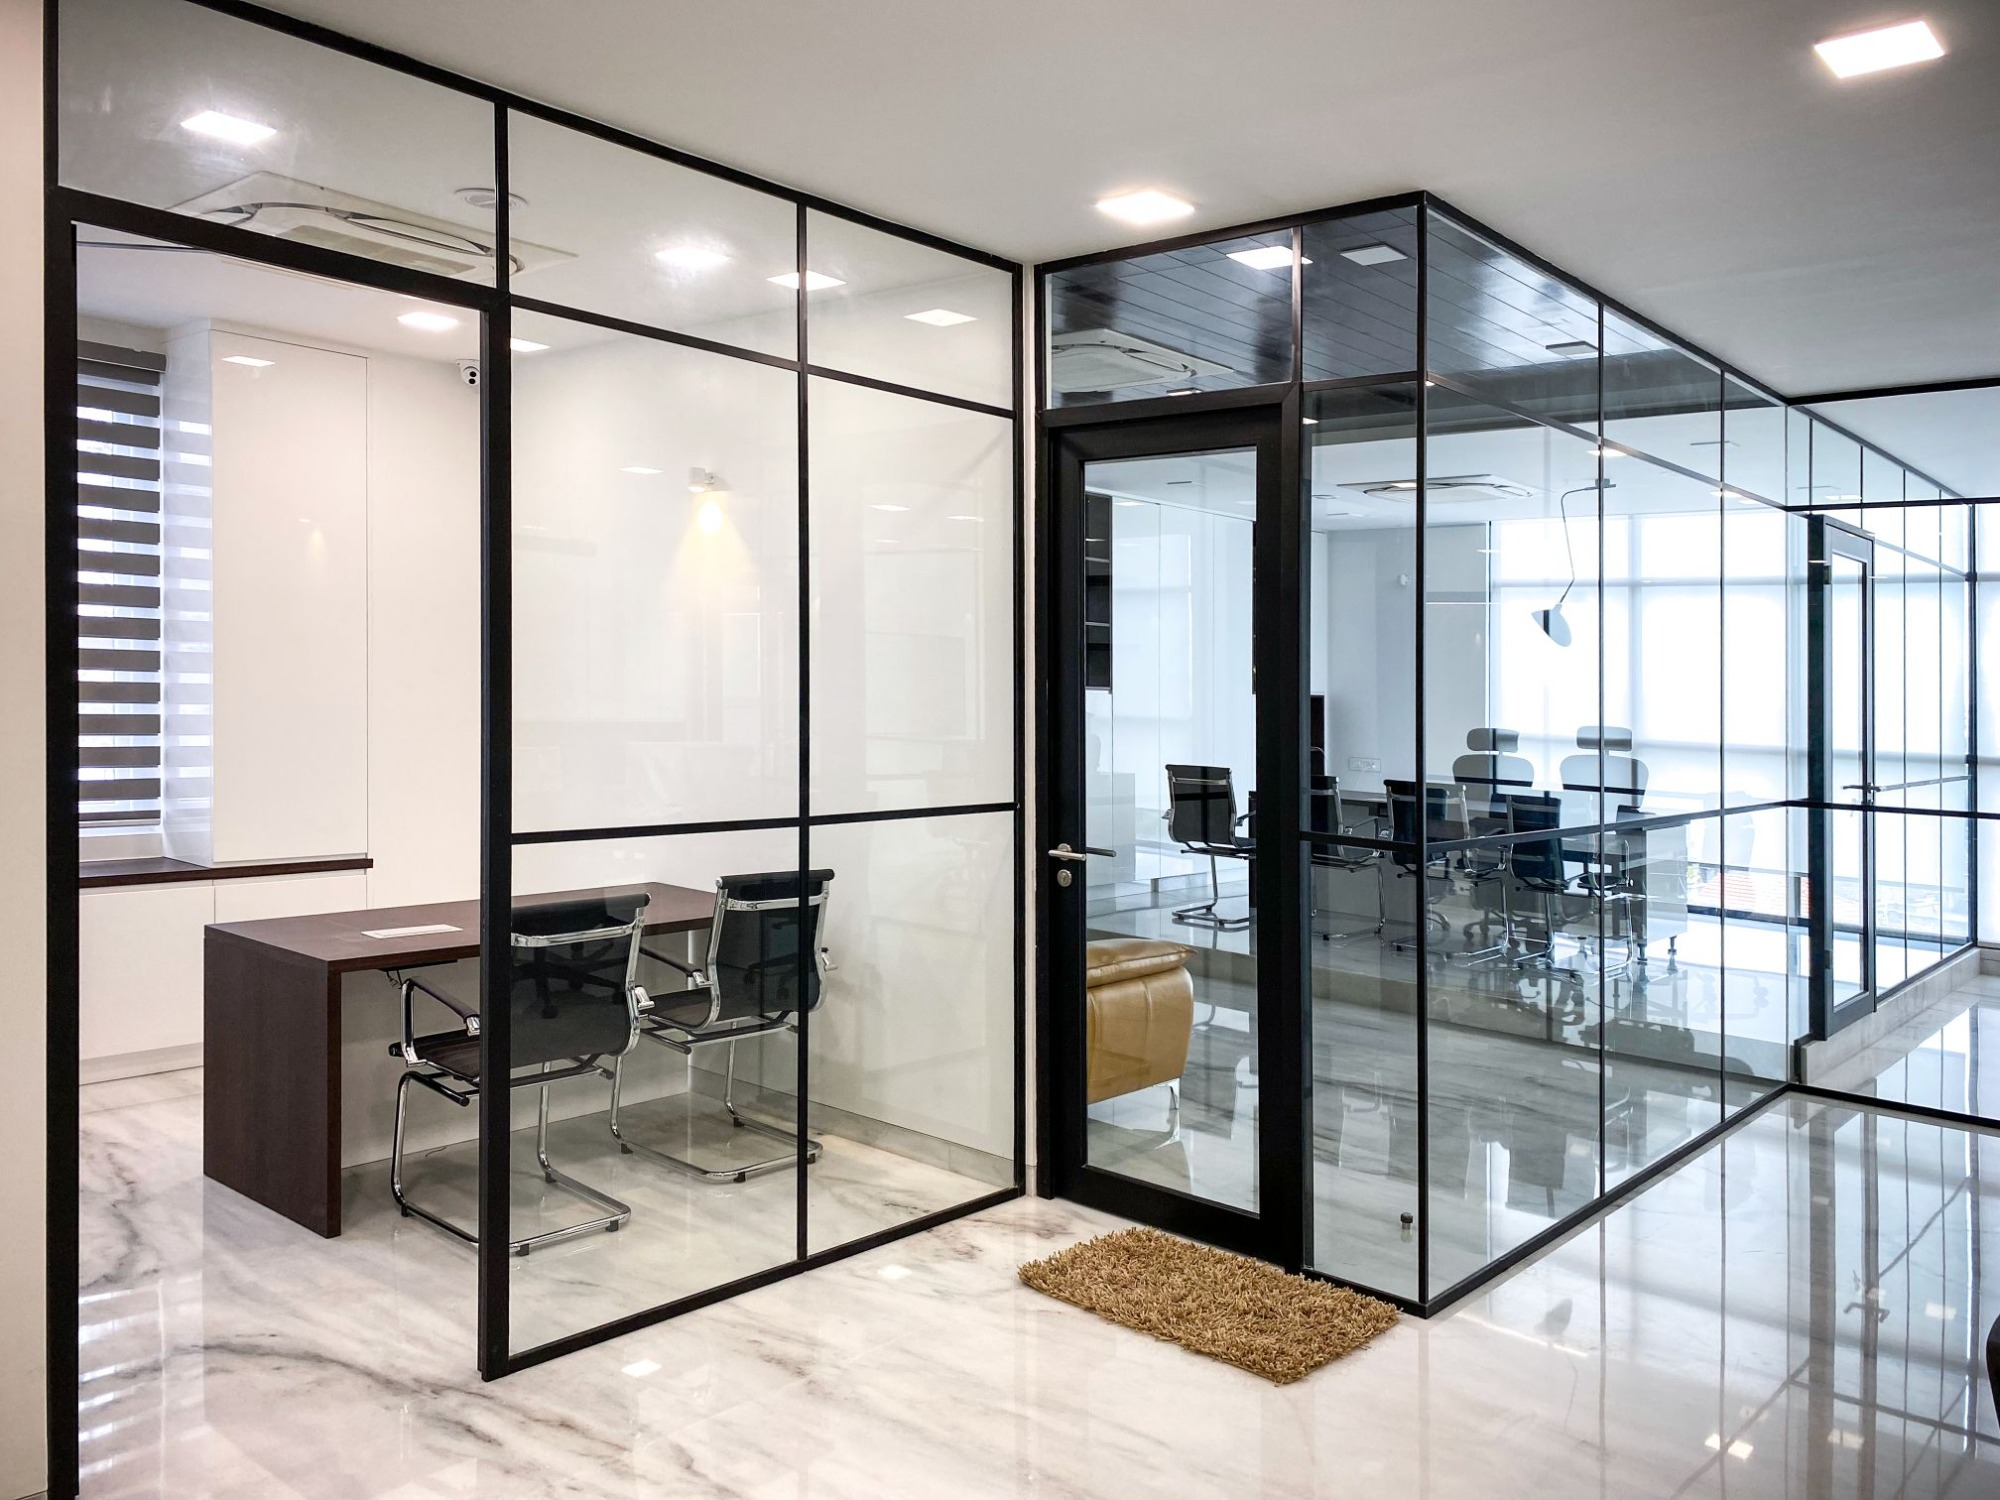 Industrial-style offices in Bangalore